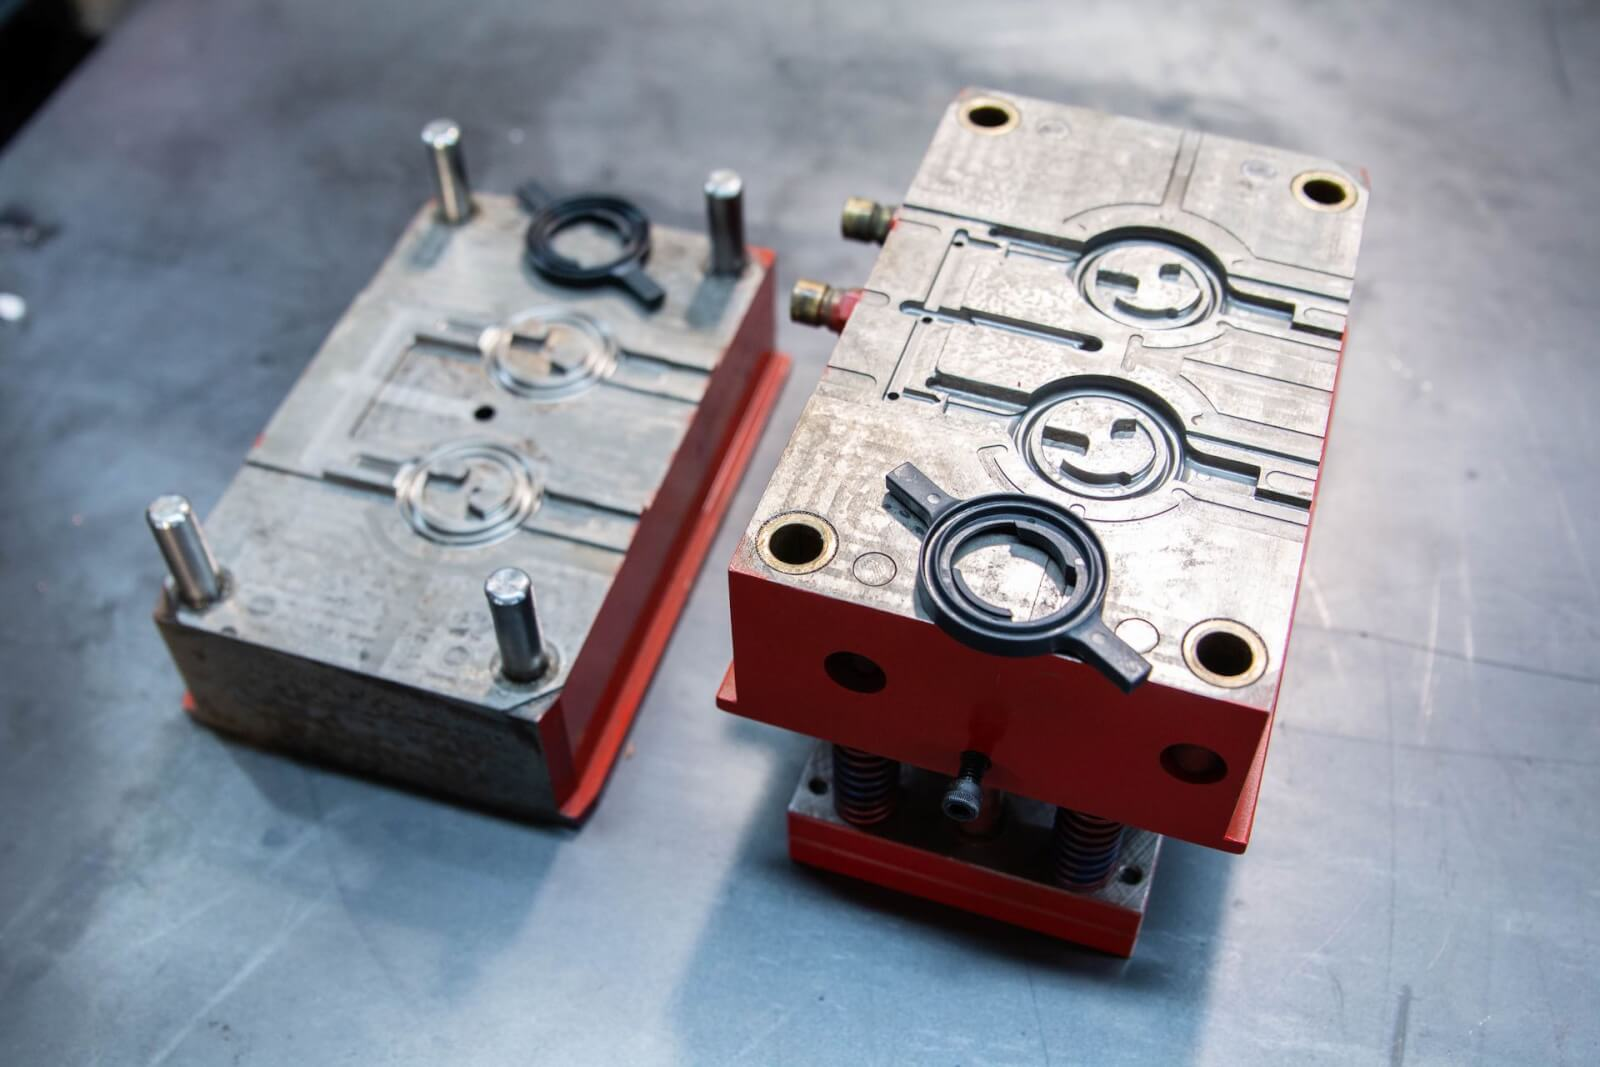 Top 5 Tips to Select a Professional Manufacturing Team for Prototype Molding Services